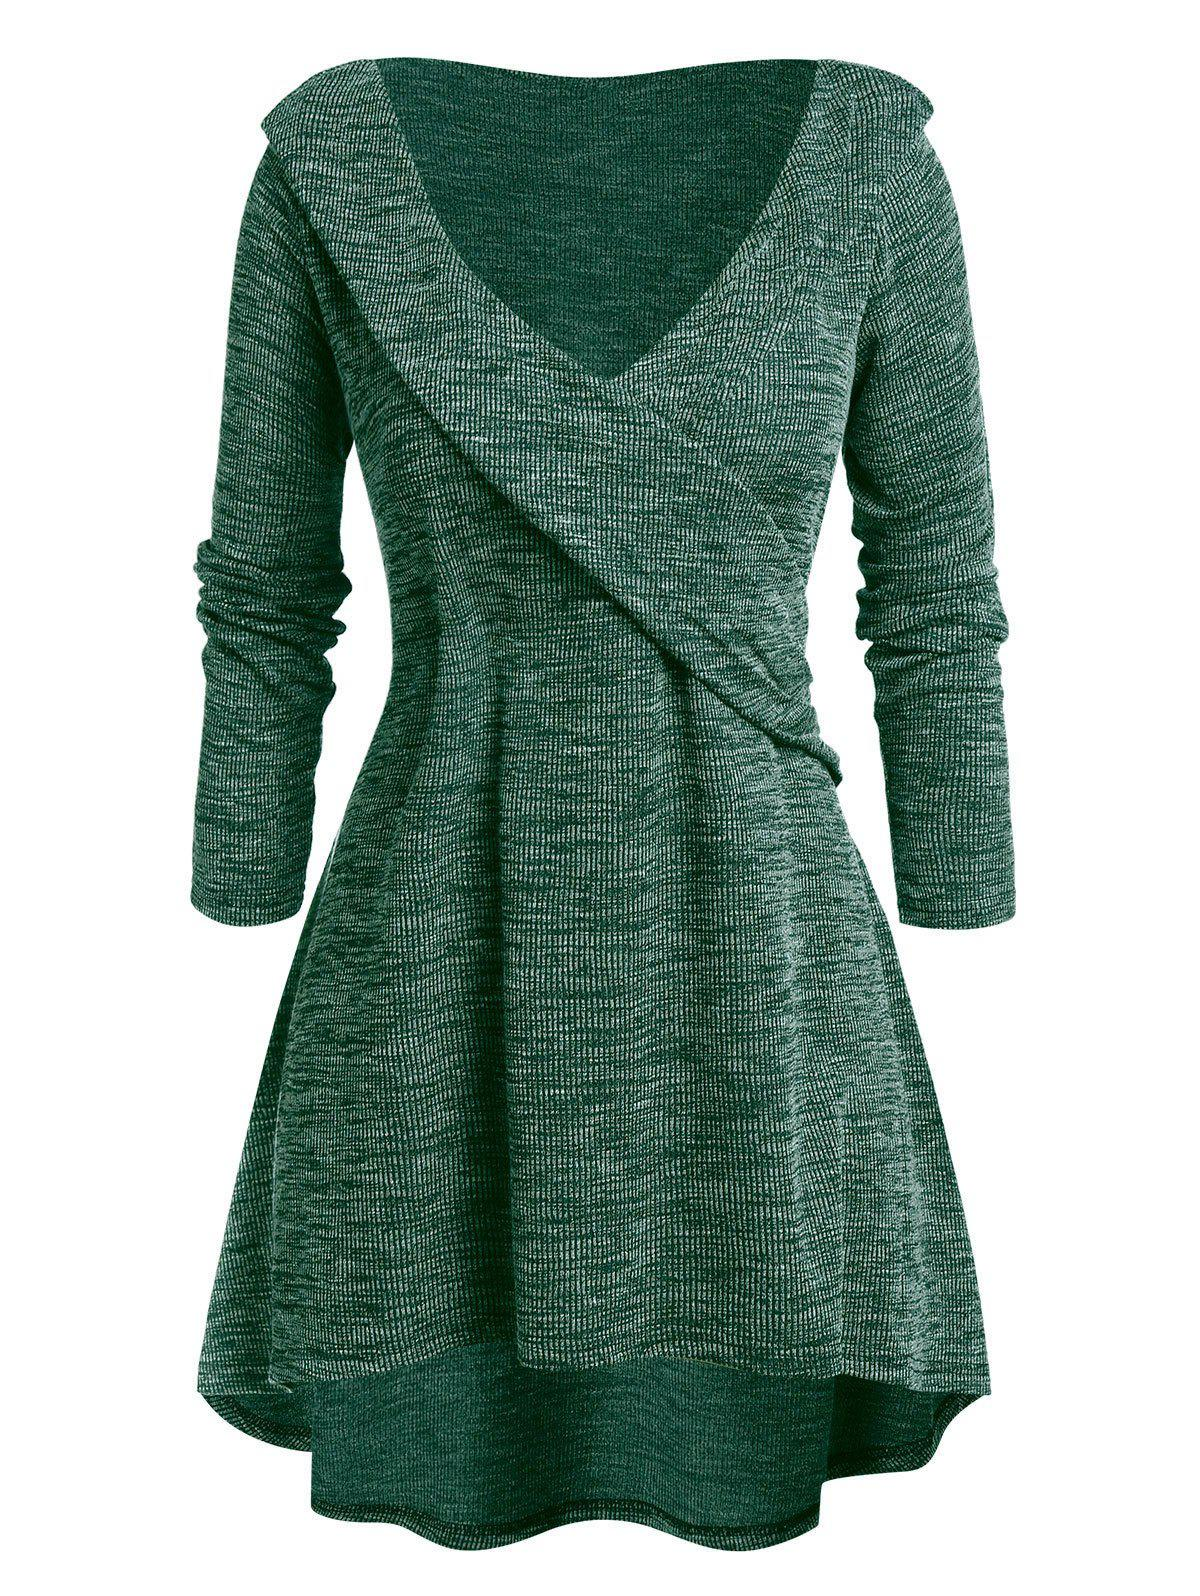 Plus Size Tunic High Low Plunging Neck Sweater - DARK FOREST GREEN 3X